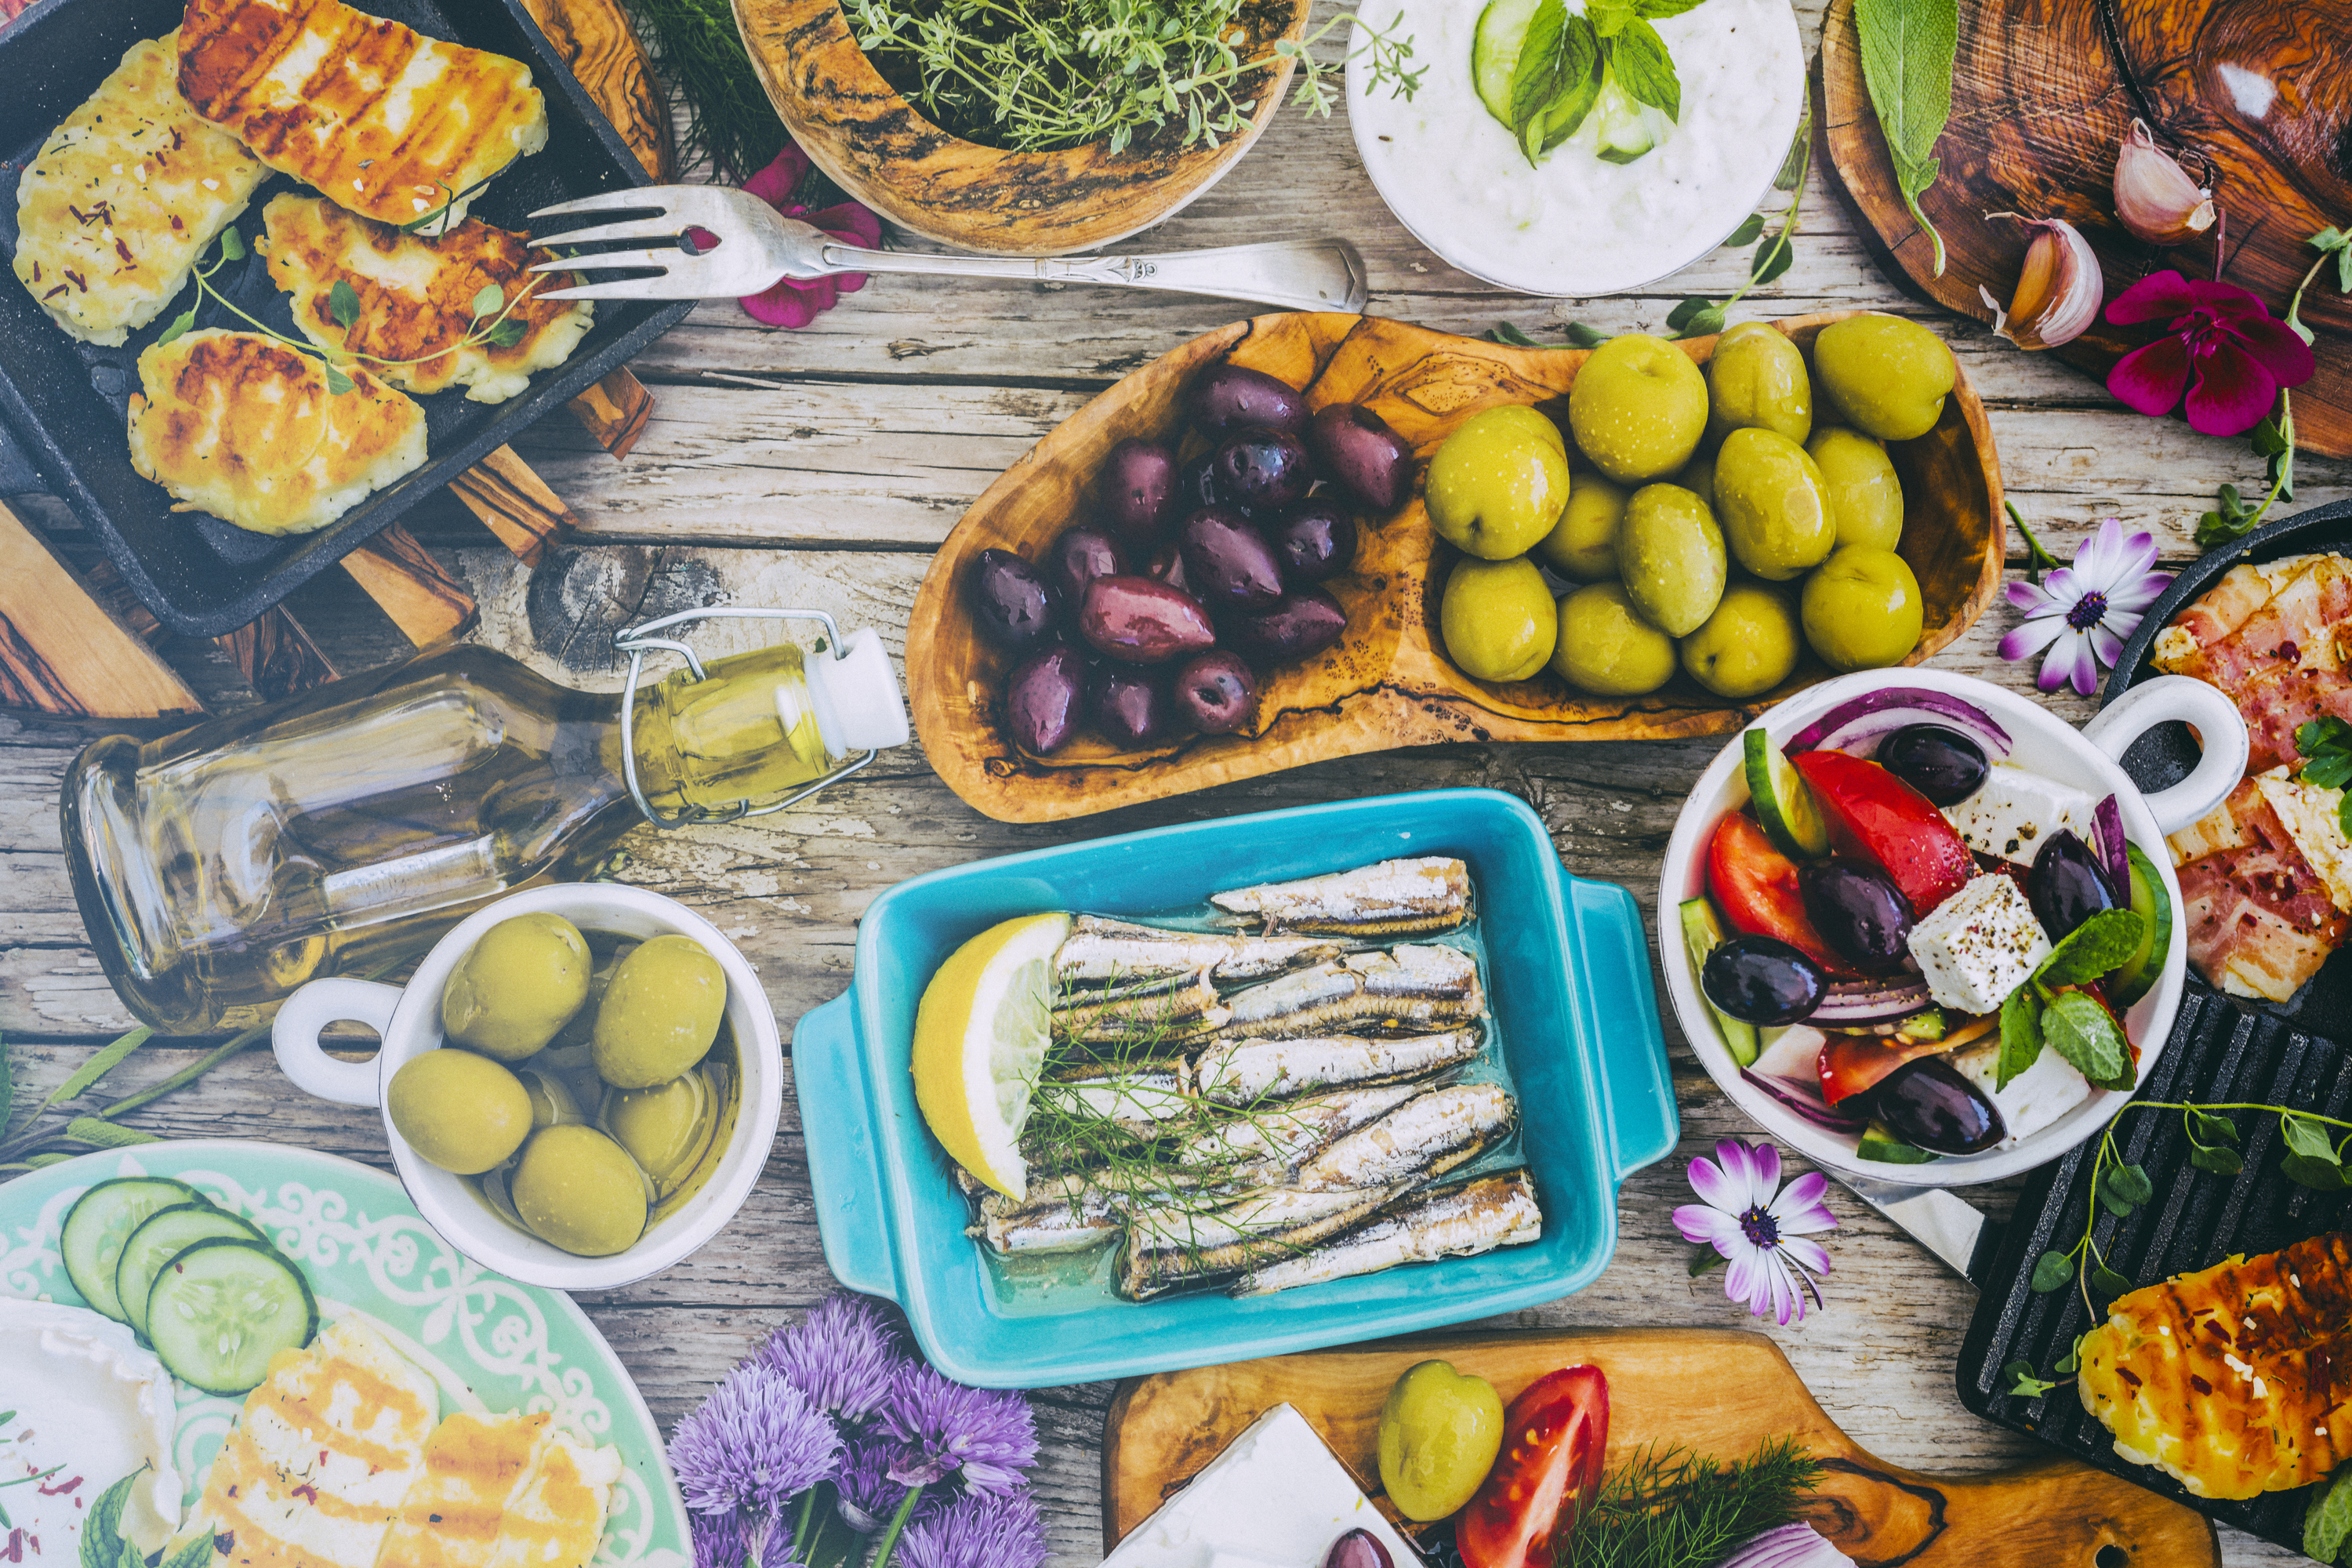 Mediterranean diet | diet | diets | Mediterranean | food | types of diets | healthy | healthy food | healthy diet | healthy life